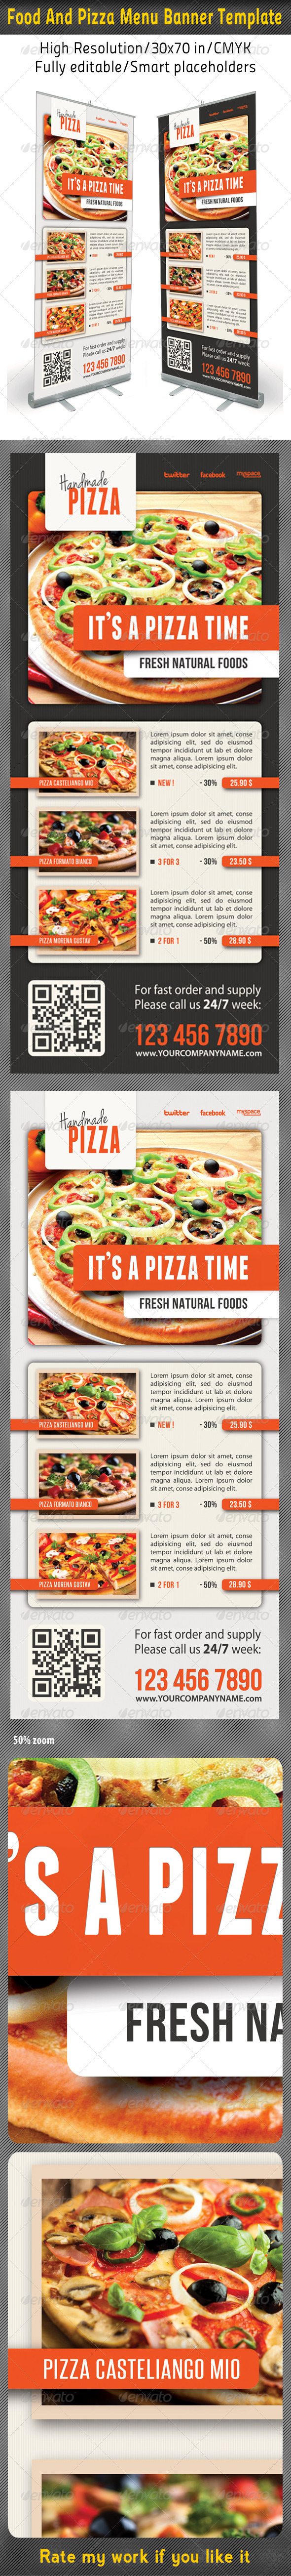 GraphicRiver Food And Pizza Menu Banner Template 08 6978631